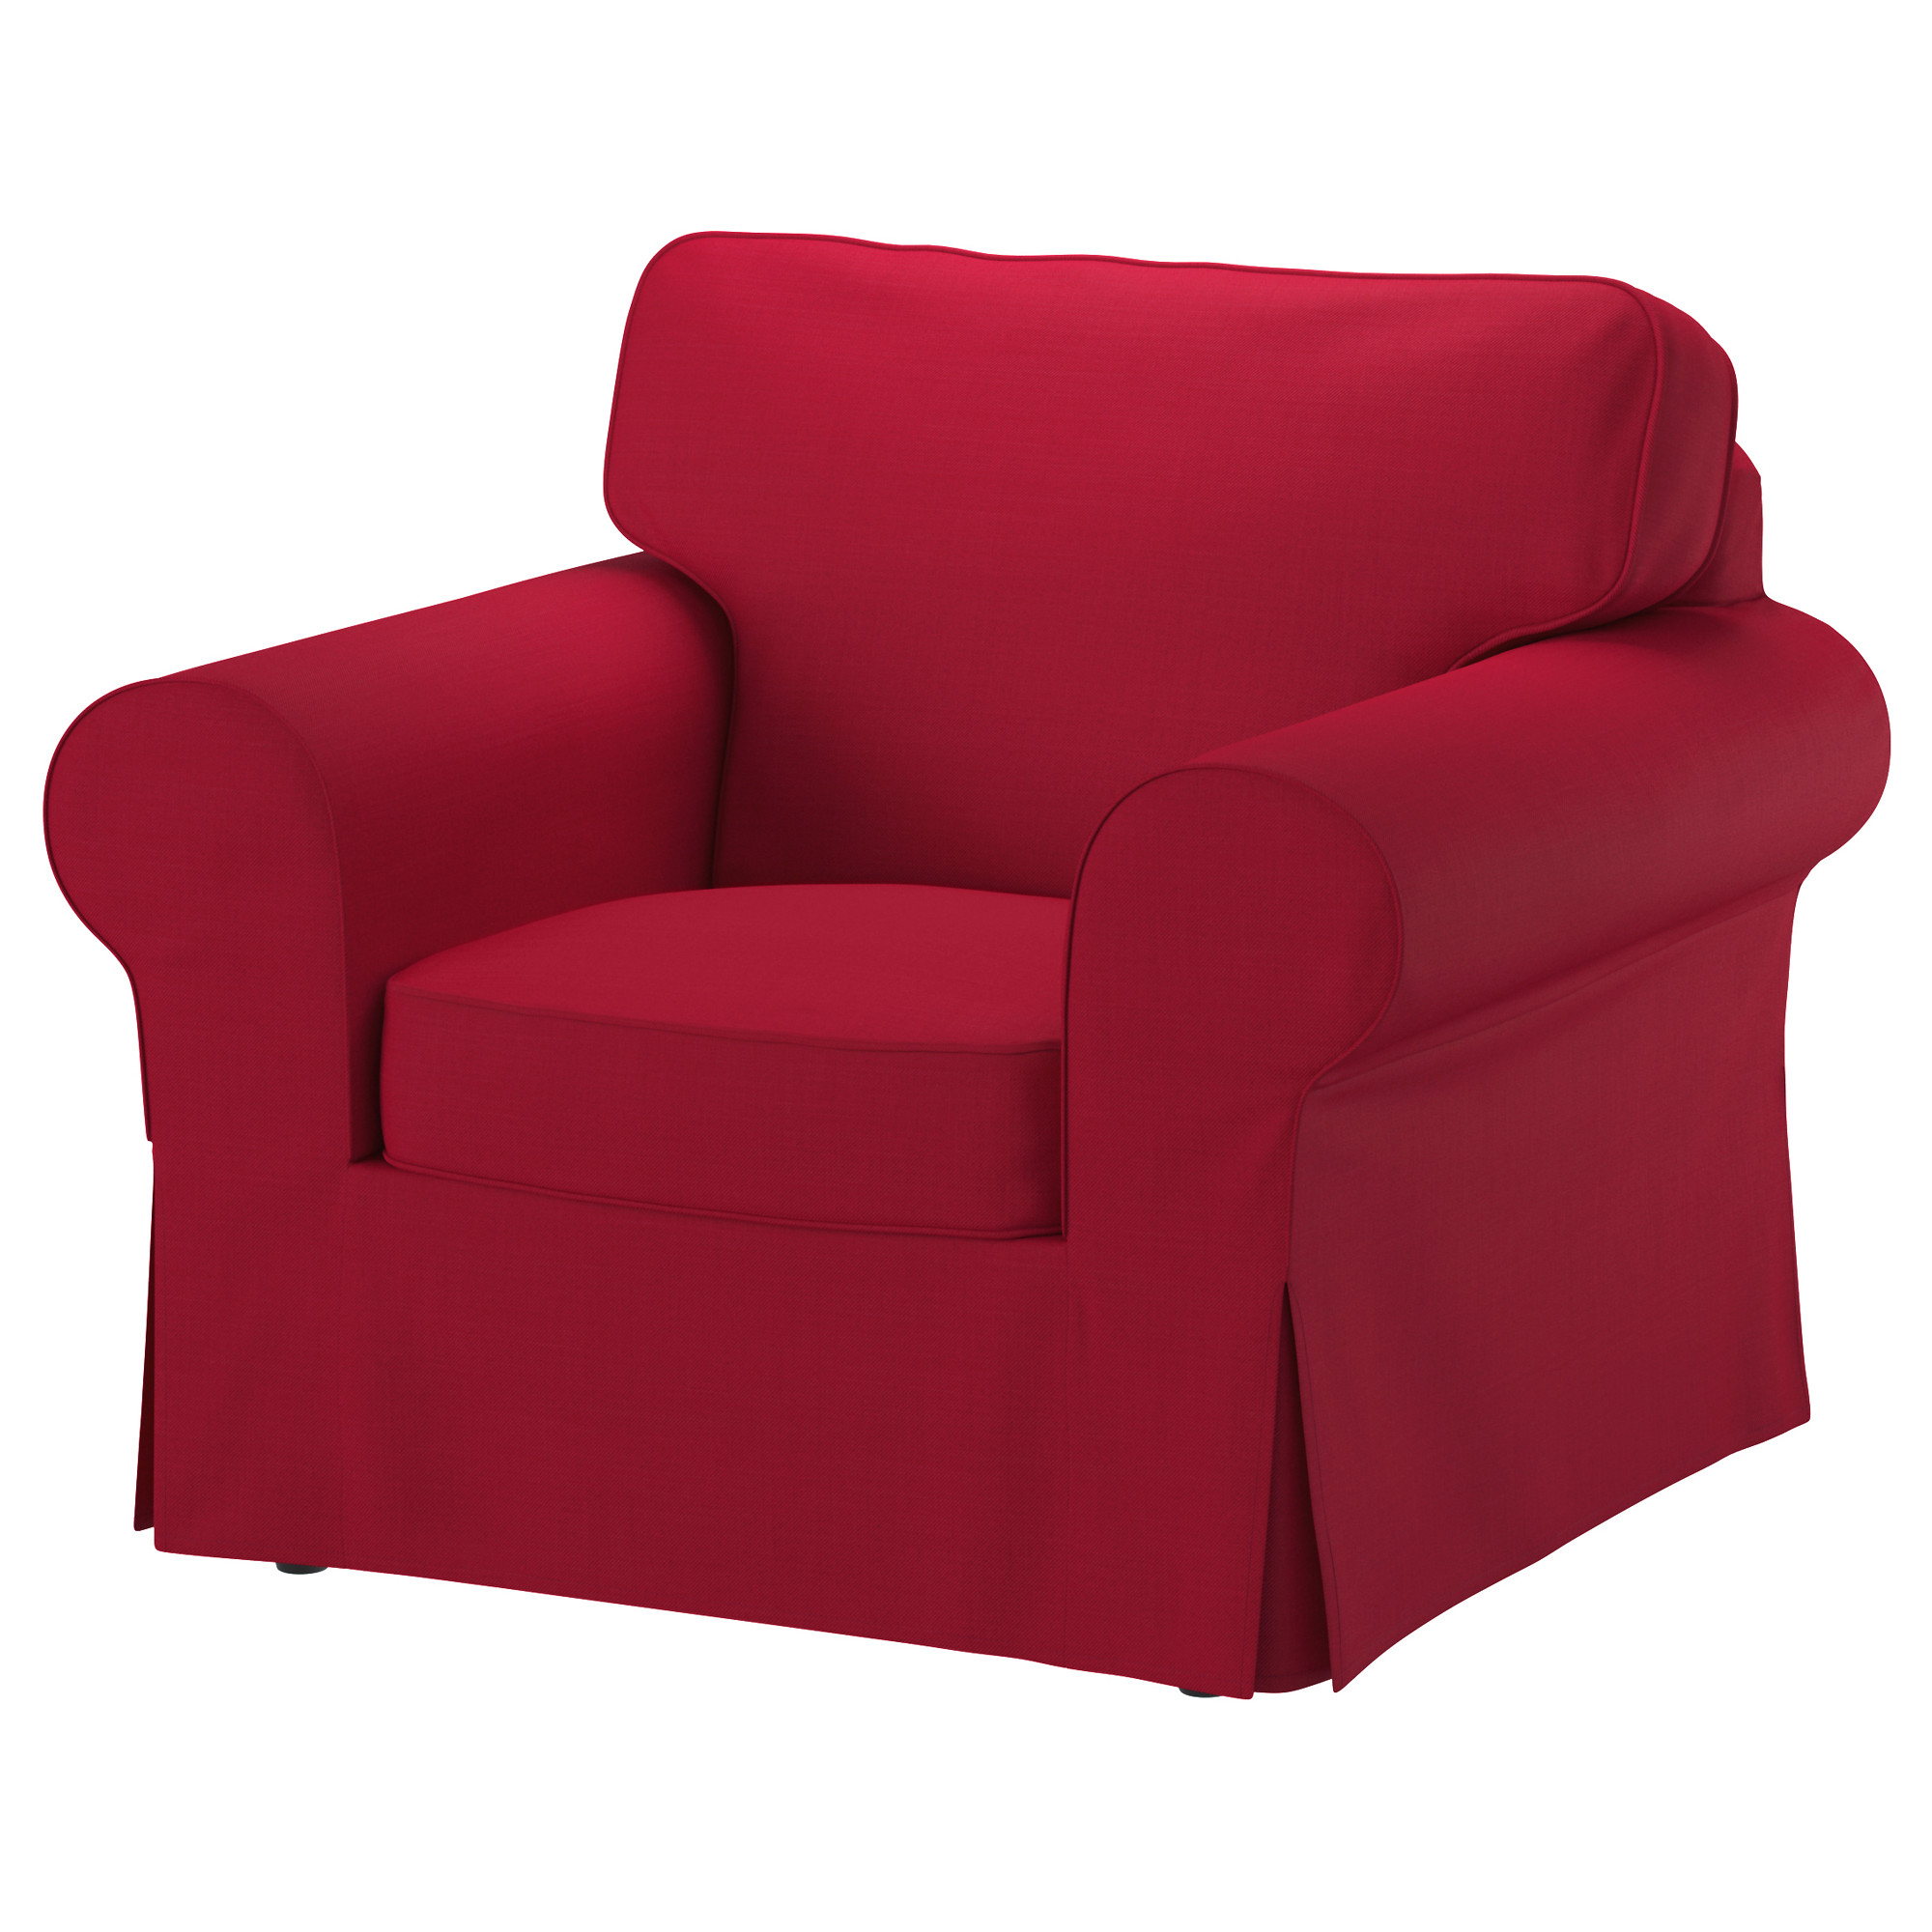 Ikea Ektorp Armchair The Cover Is Easy To Keep Clean As It Is Intended For Ikea Sofa Chairs (Image 11 of 25)